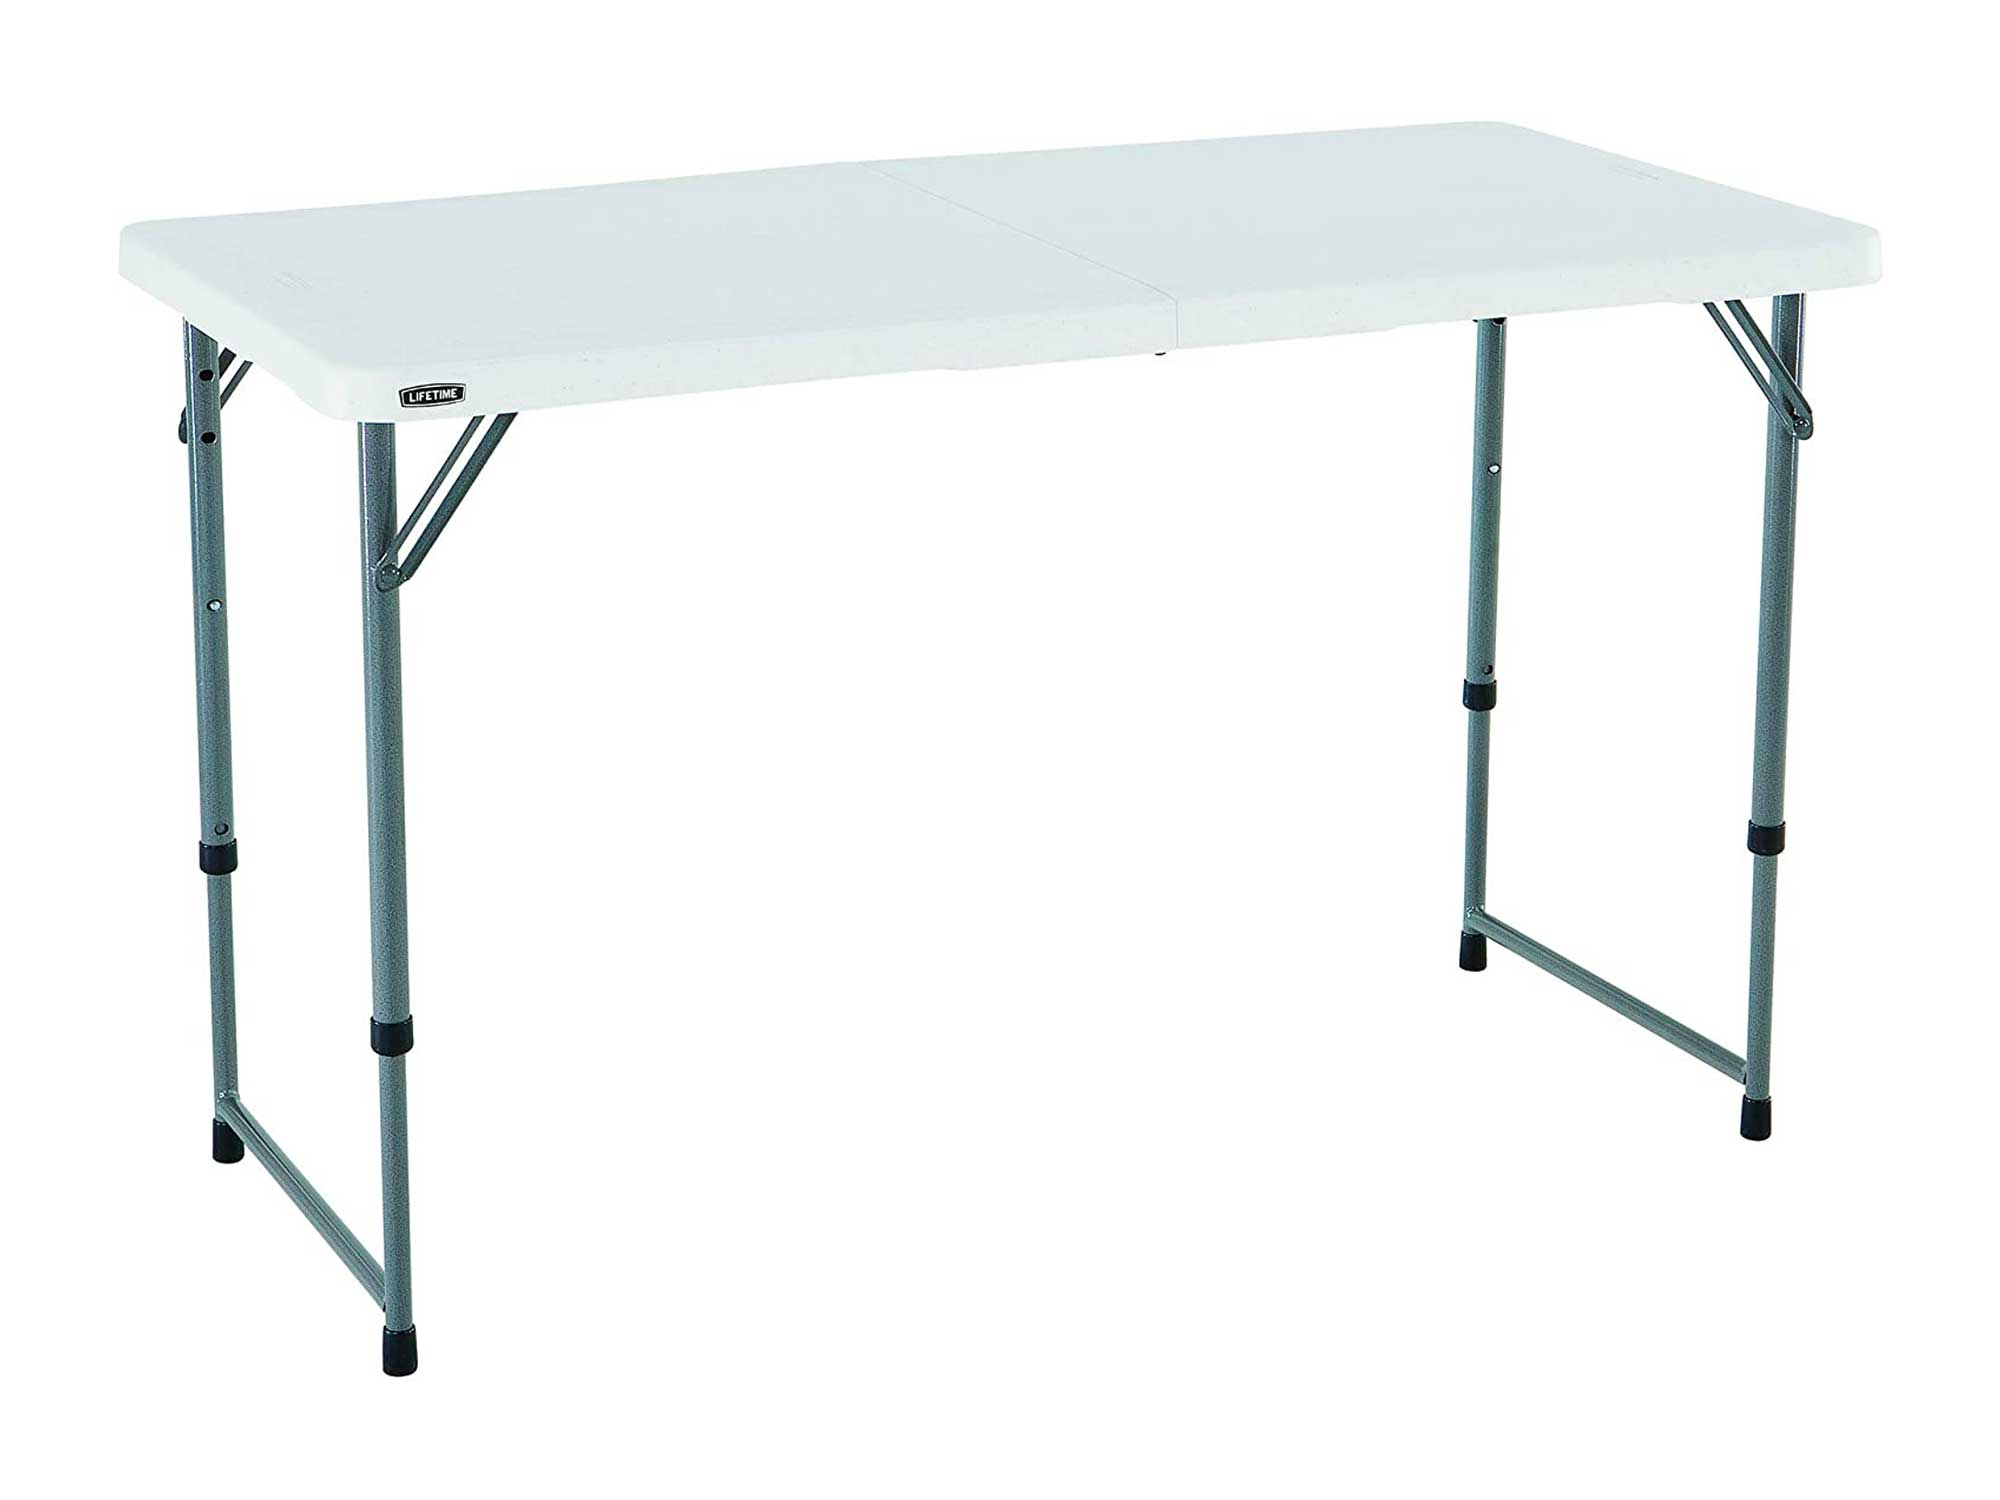 Lifetime Height Adjustable Craft Camping and Utility Folding Table, 4 ft, 4'/48 x 24, White Granite